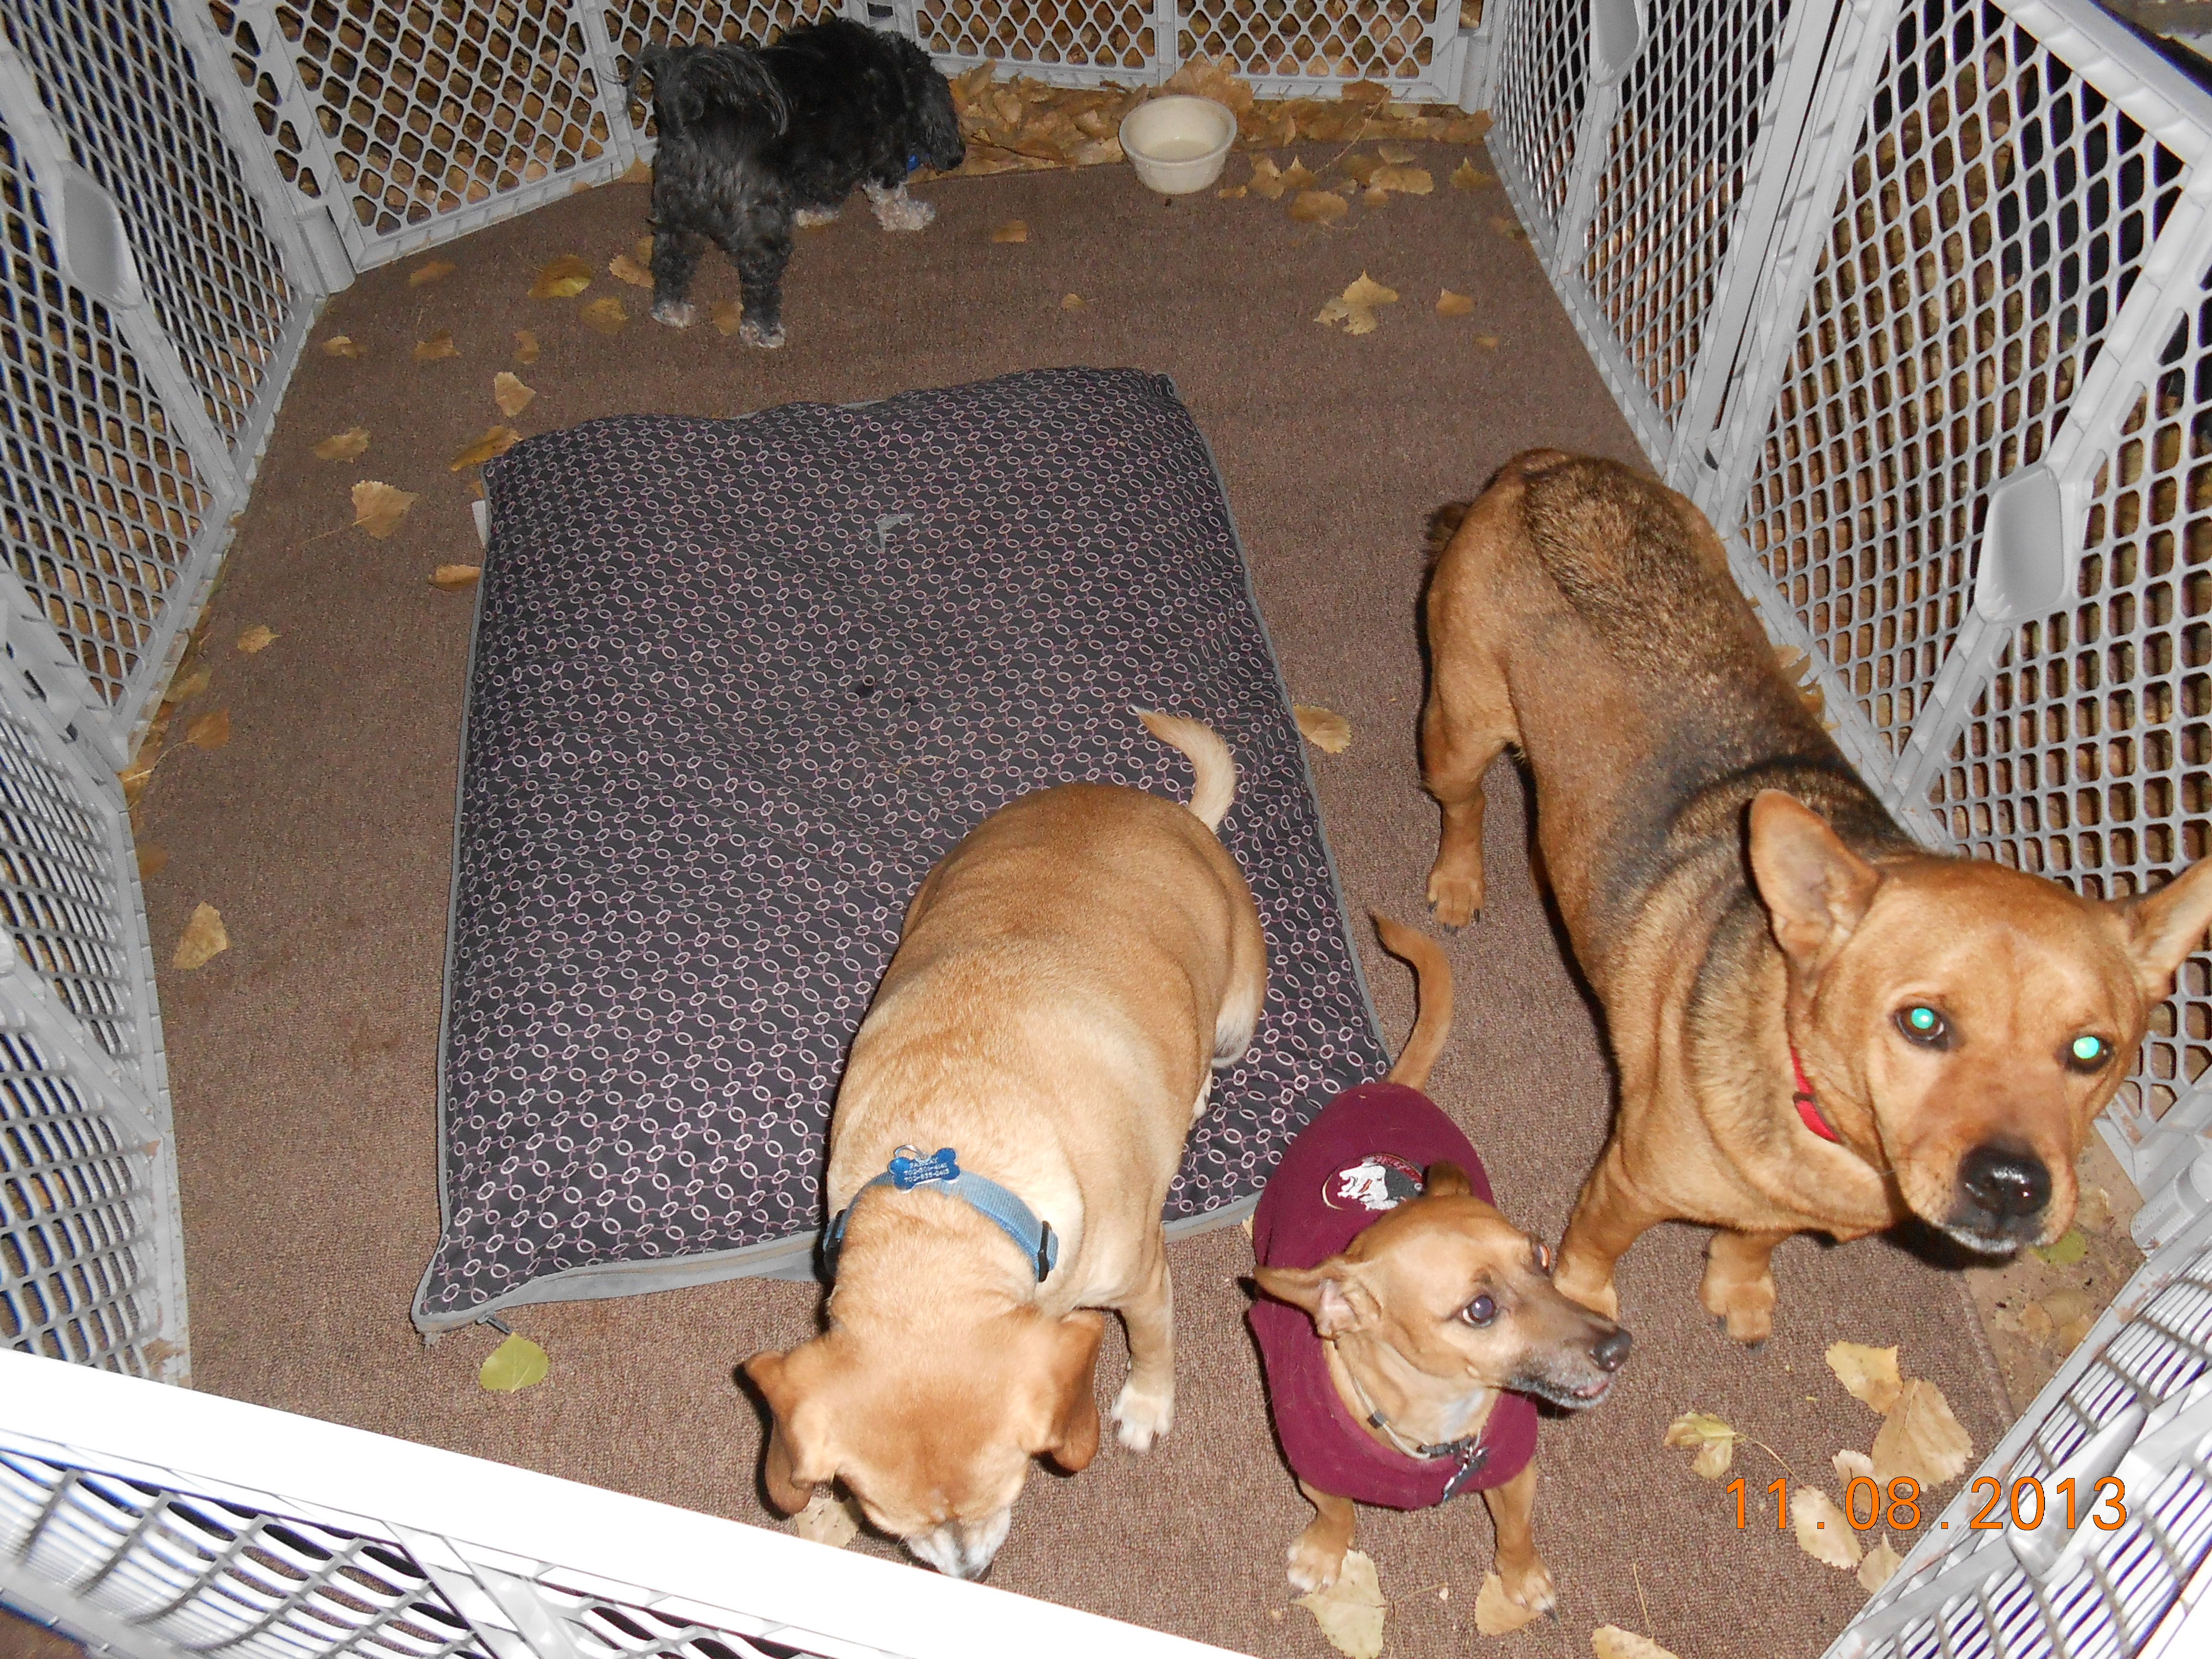 We have our own portable playpen so we never miss any of the action! - at Zion National Park, Watchman's Campground